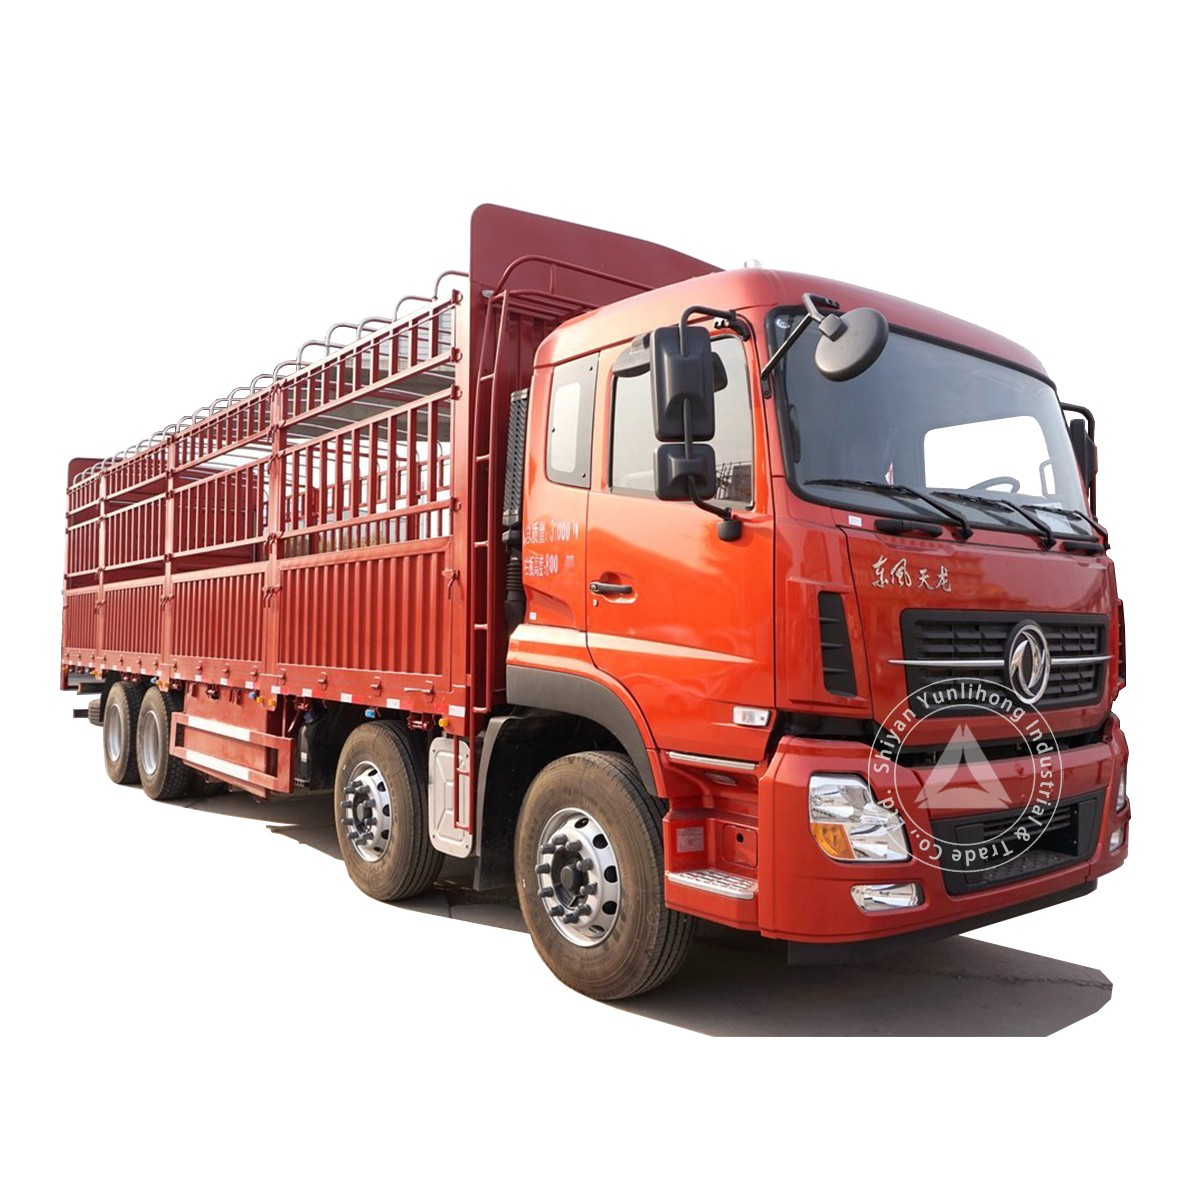 Dongfeng KL 8x4 GVW 31 Ton Regional Distribution TrucK Chassis